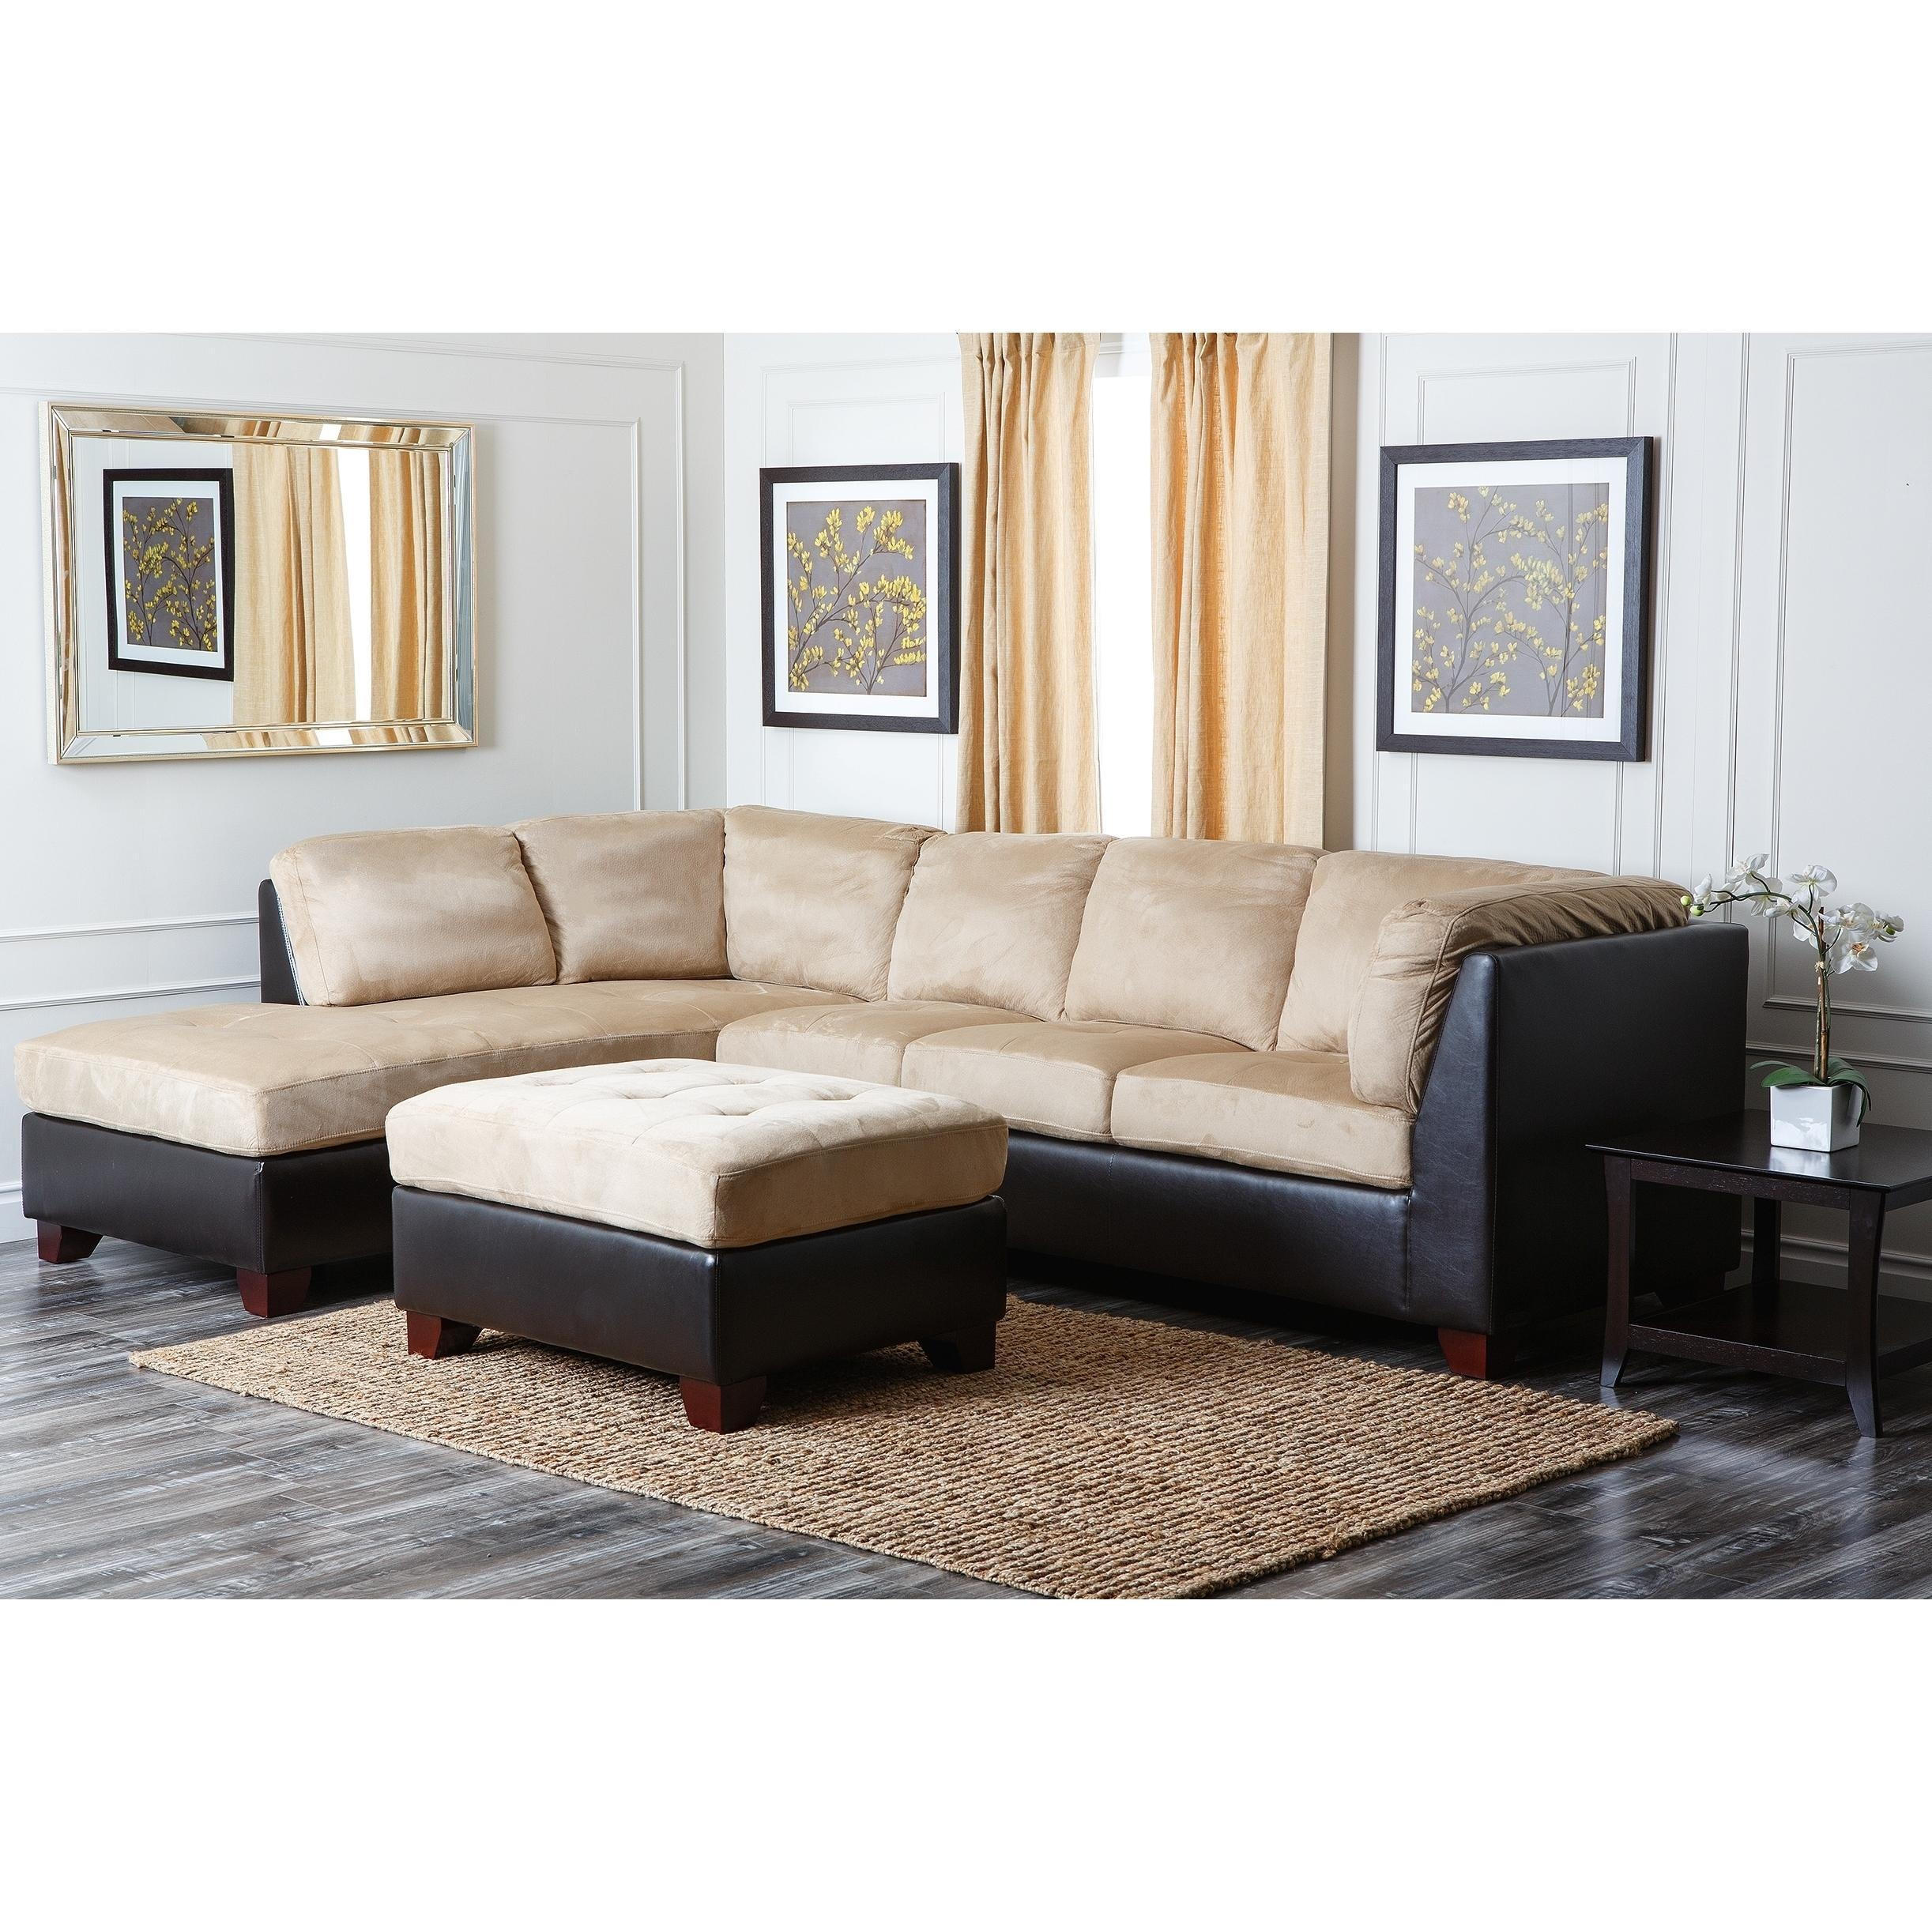 Abbyson Sectional Sofa | Sofa Gallery | Kengire For Abbyson Sectional Sofa (Image 4 of 15)